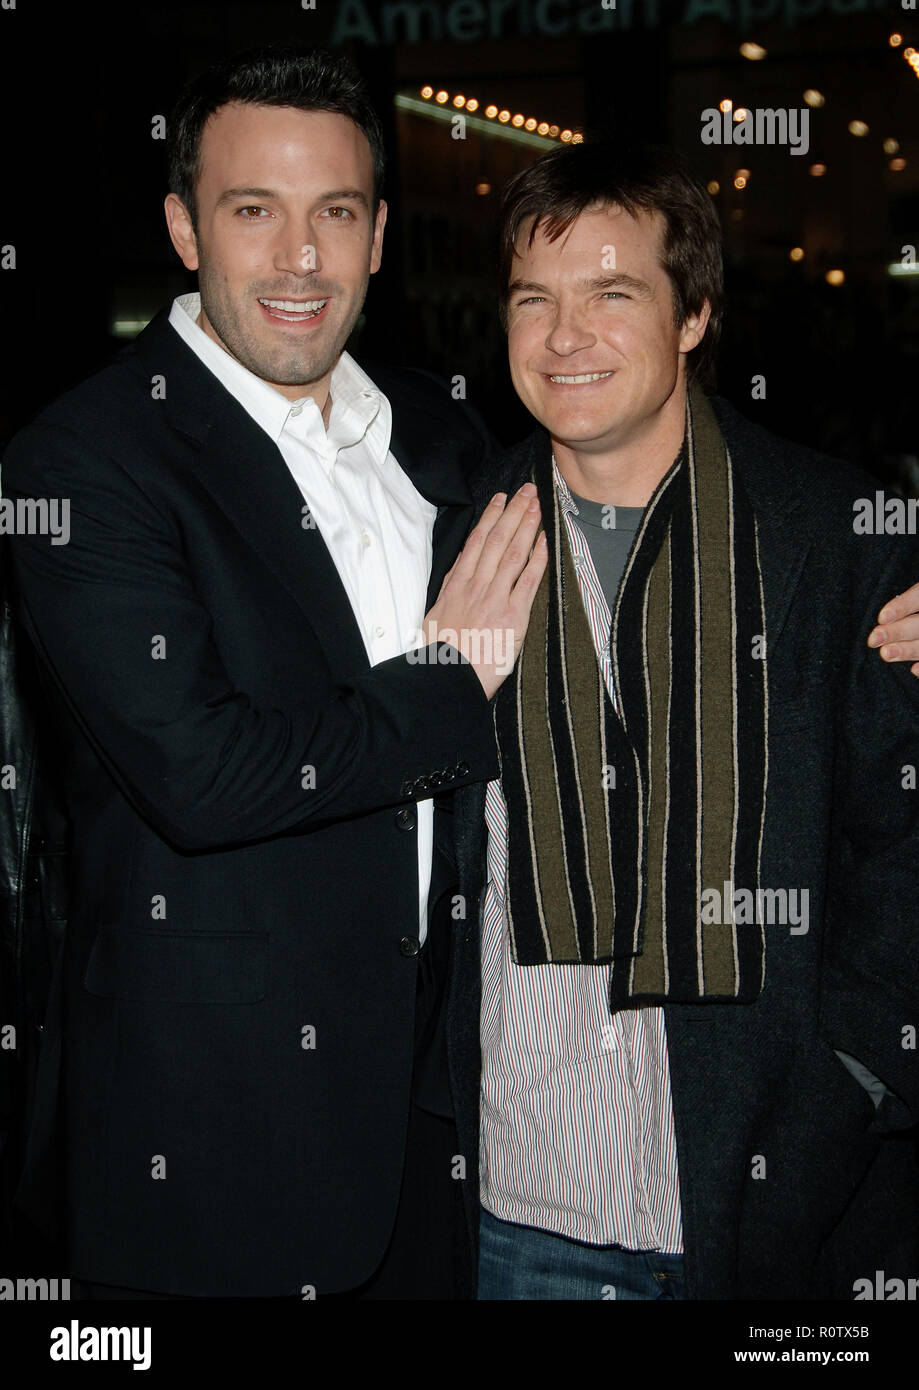 Ben Affleck and Jason Bateman arriving at the Smokin' Aces at the Chinese Theatre In Los Angeles. January 18, 2007.  eye contact smile 3/4          -  - Stock Image